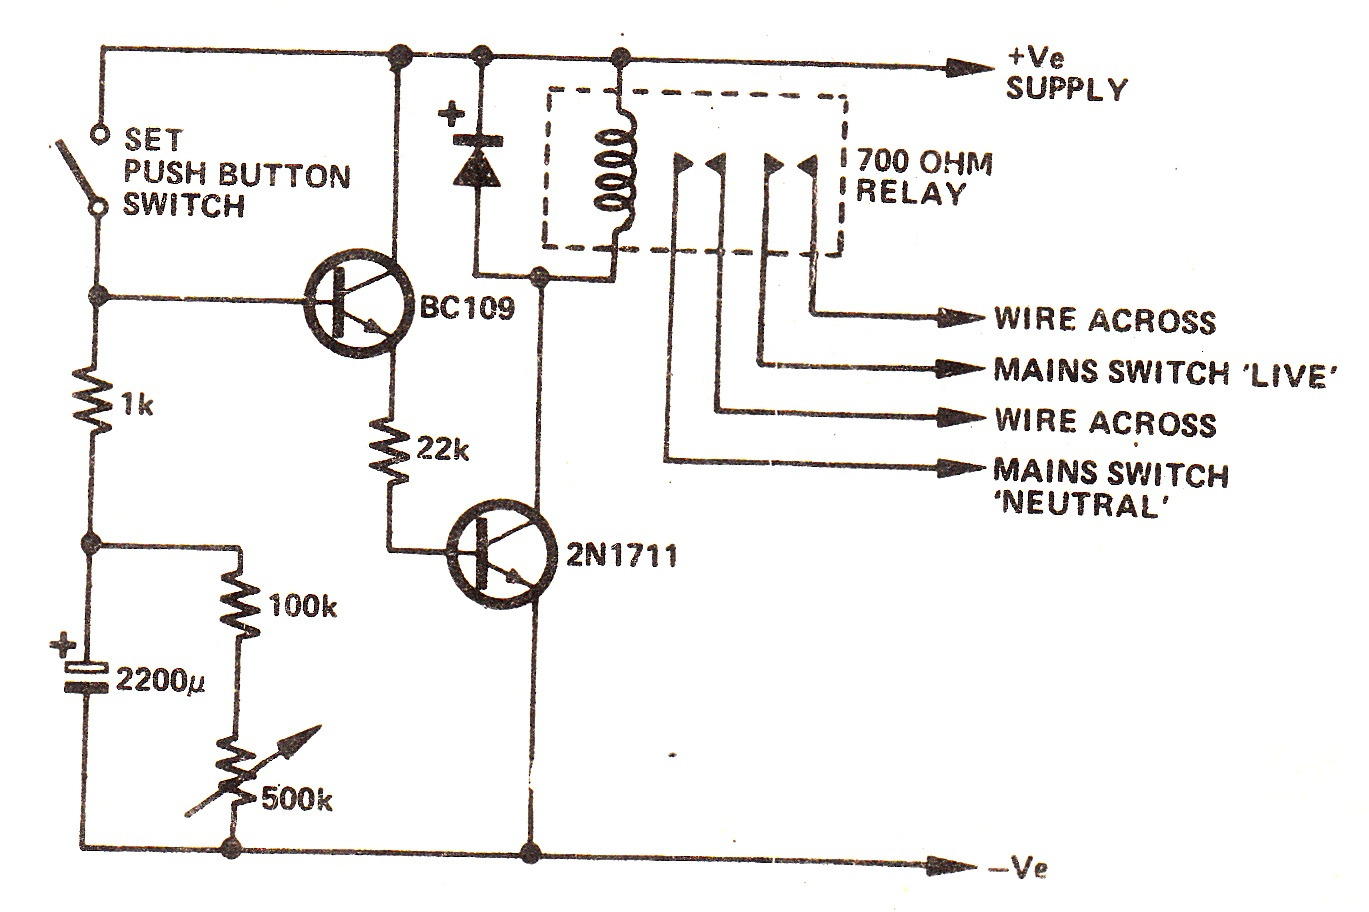 Simple Delay Off Alarm Circuit Rangkaian Step Forward Control Button Circuitdb Snoozetimerdelaycircuit